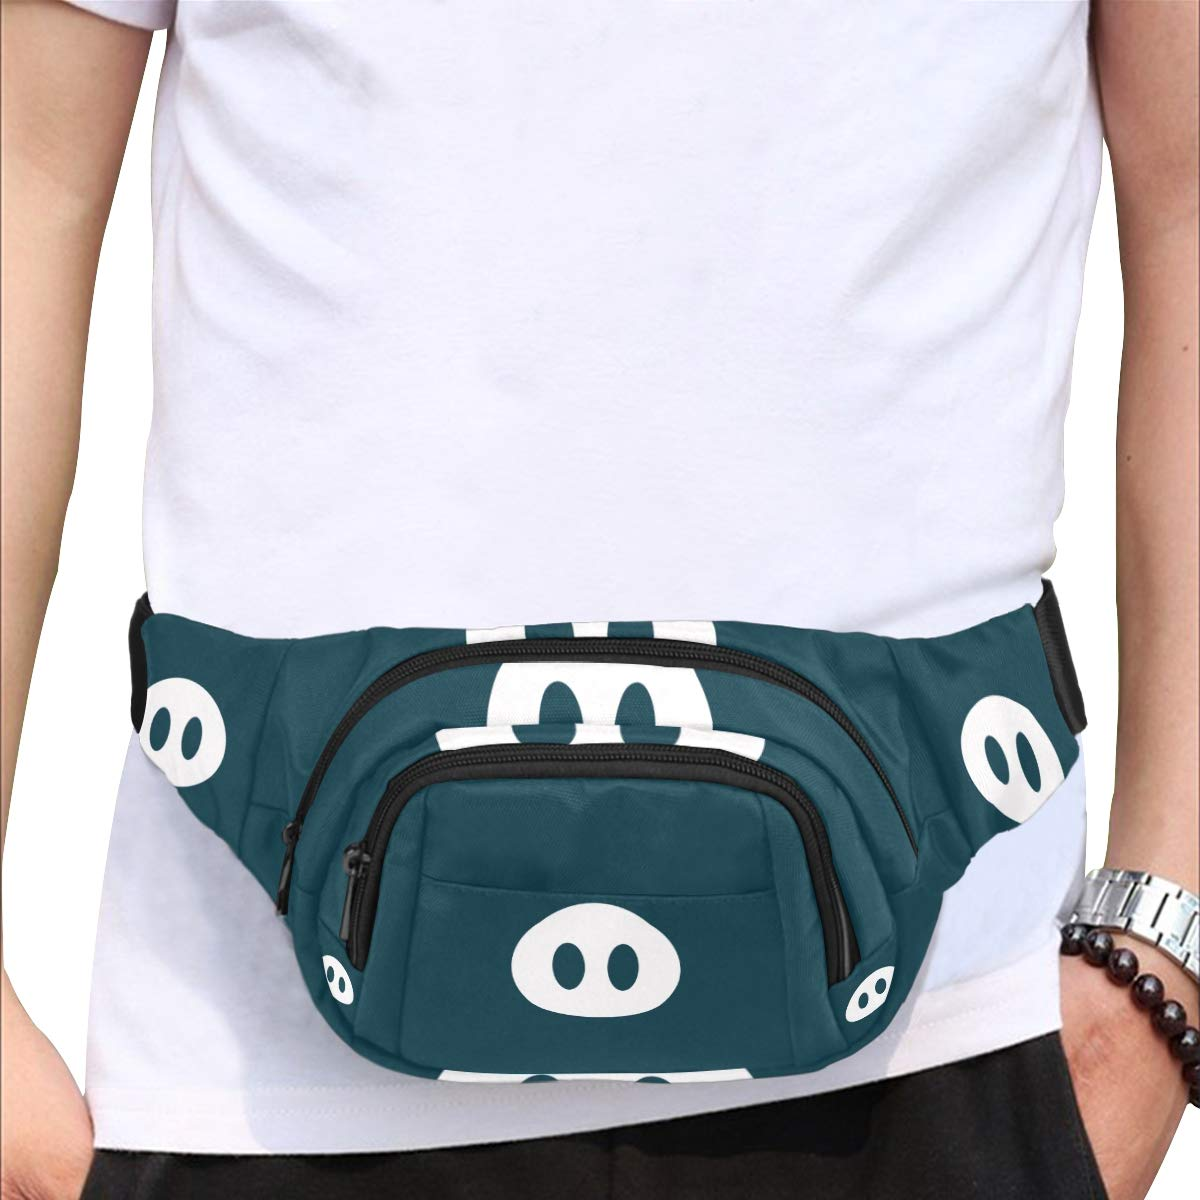 Cartoon Funny Pink Pig Nose Fenny Packs Waist Bags Adjustable Belt Waterproof Nylon Travel Running Sport Vacation Party For Men Women Boys Girls Kids